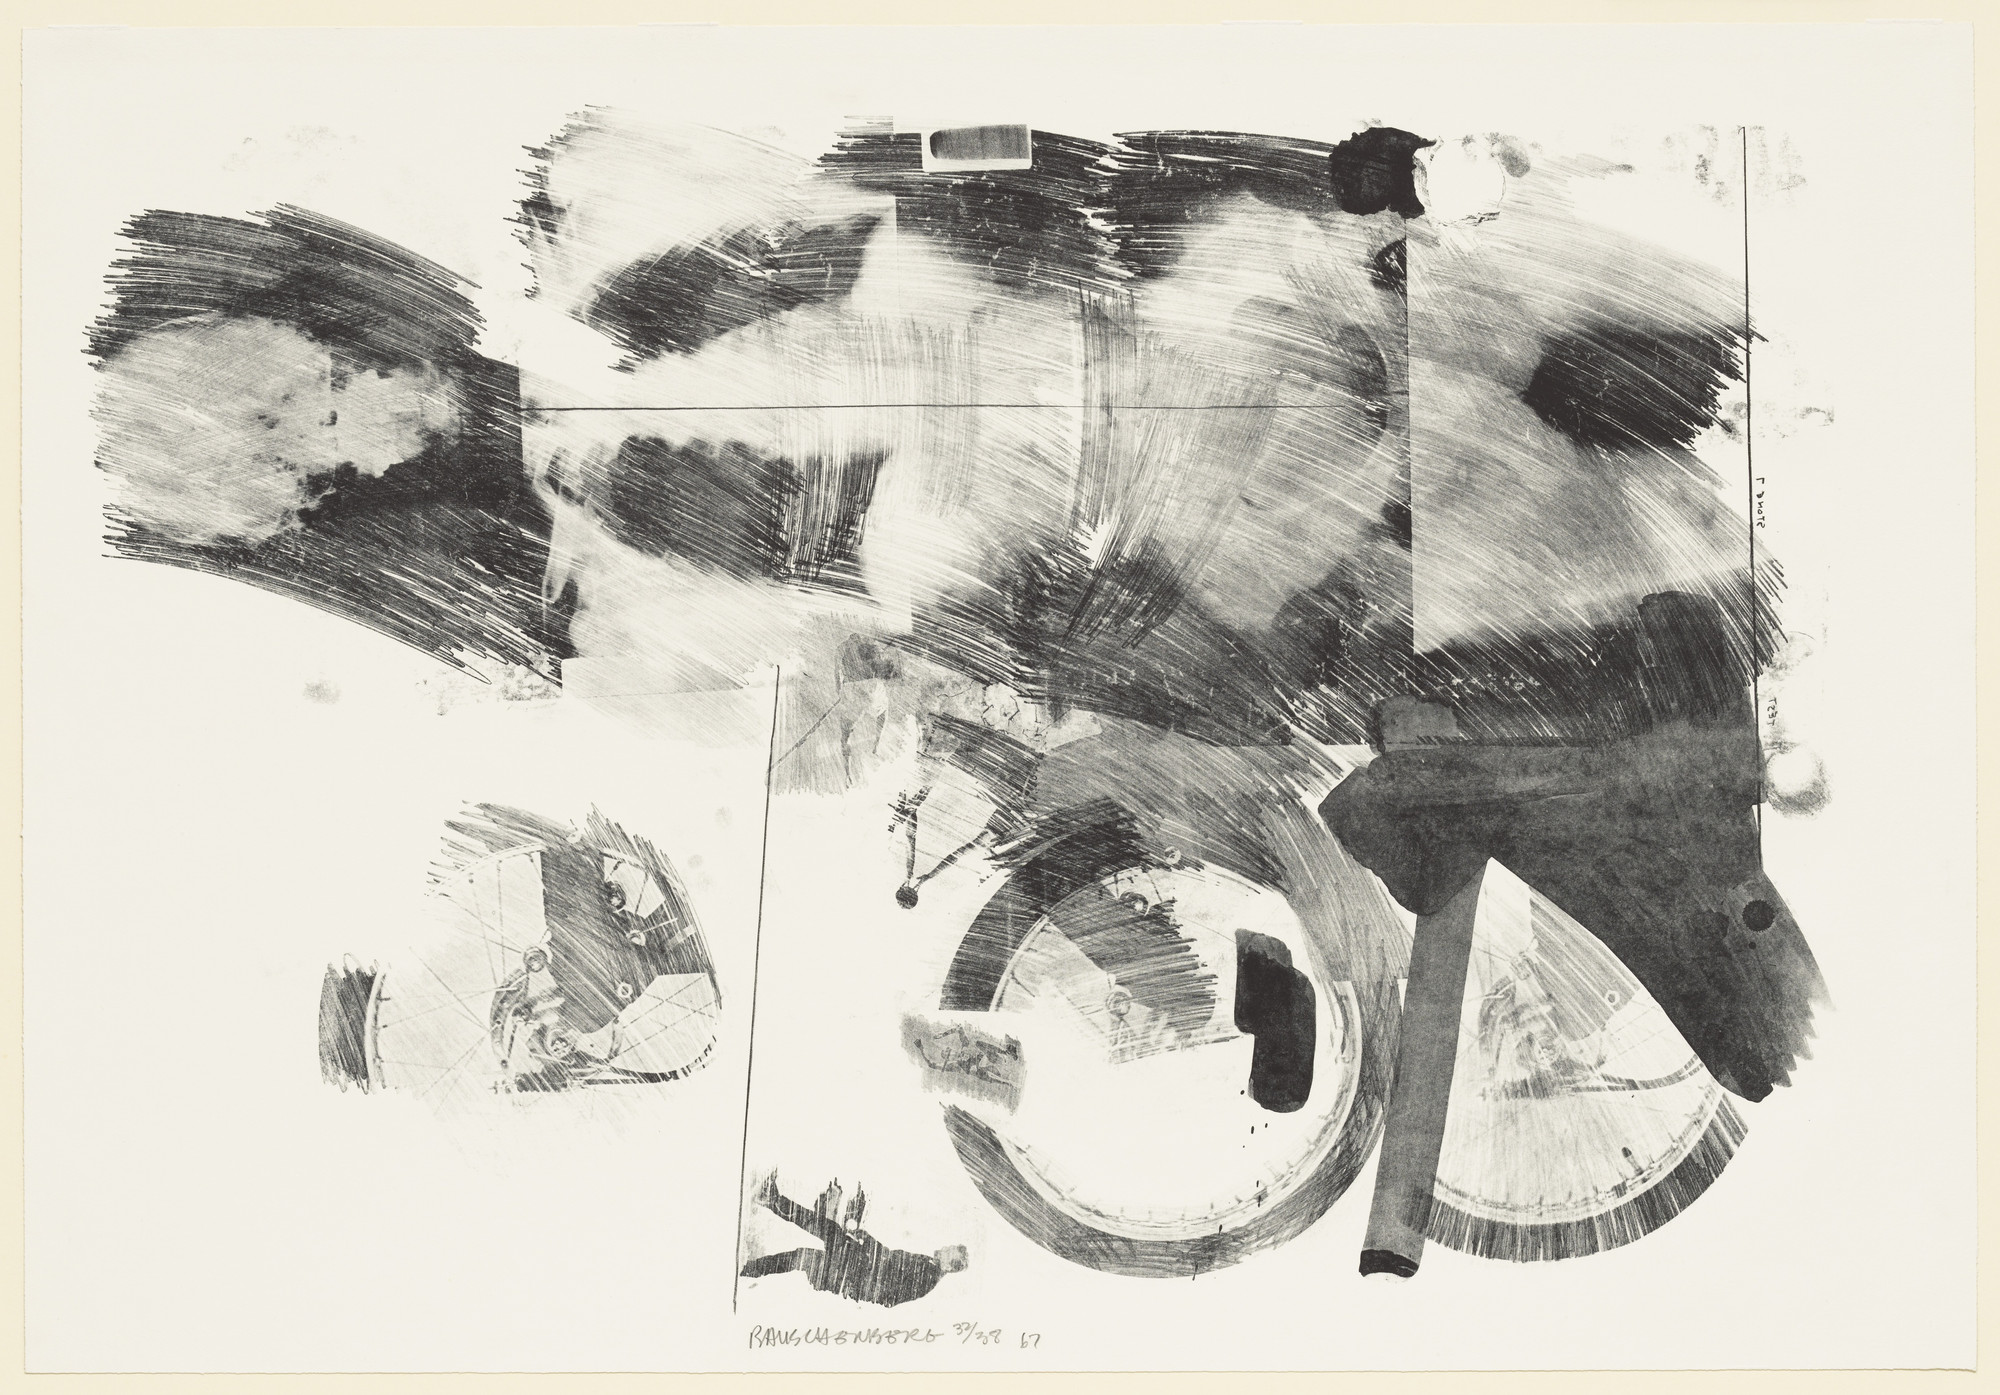 Robert Rauschenberg. Test Stone #7 (Torso) from Booster and 7 Studies. 1967